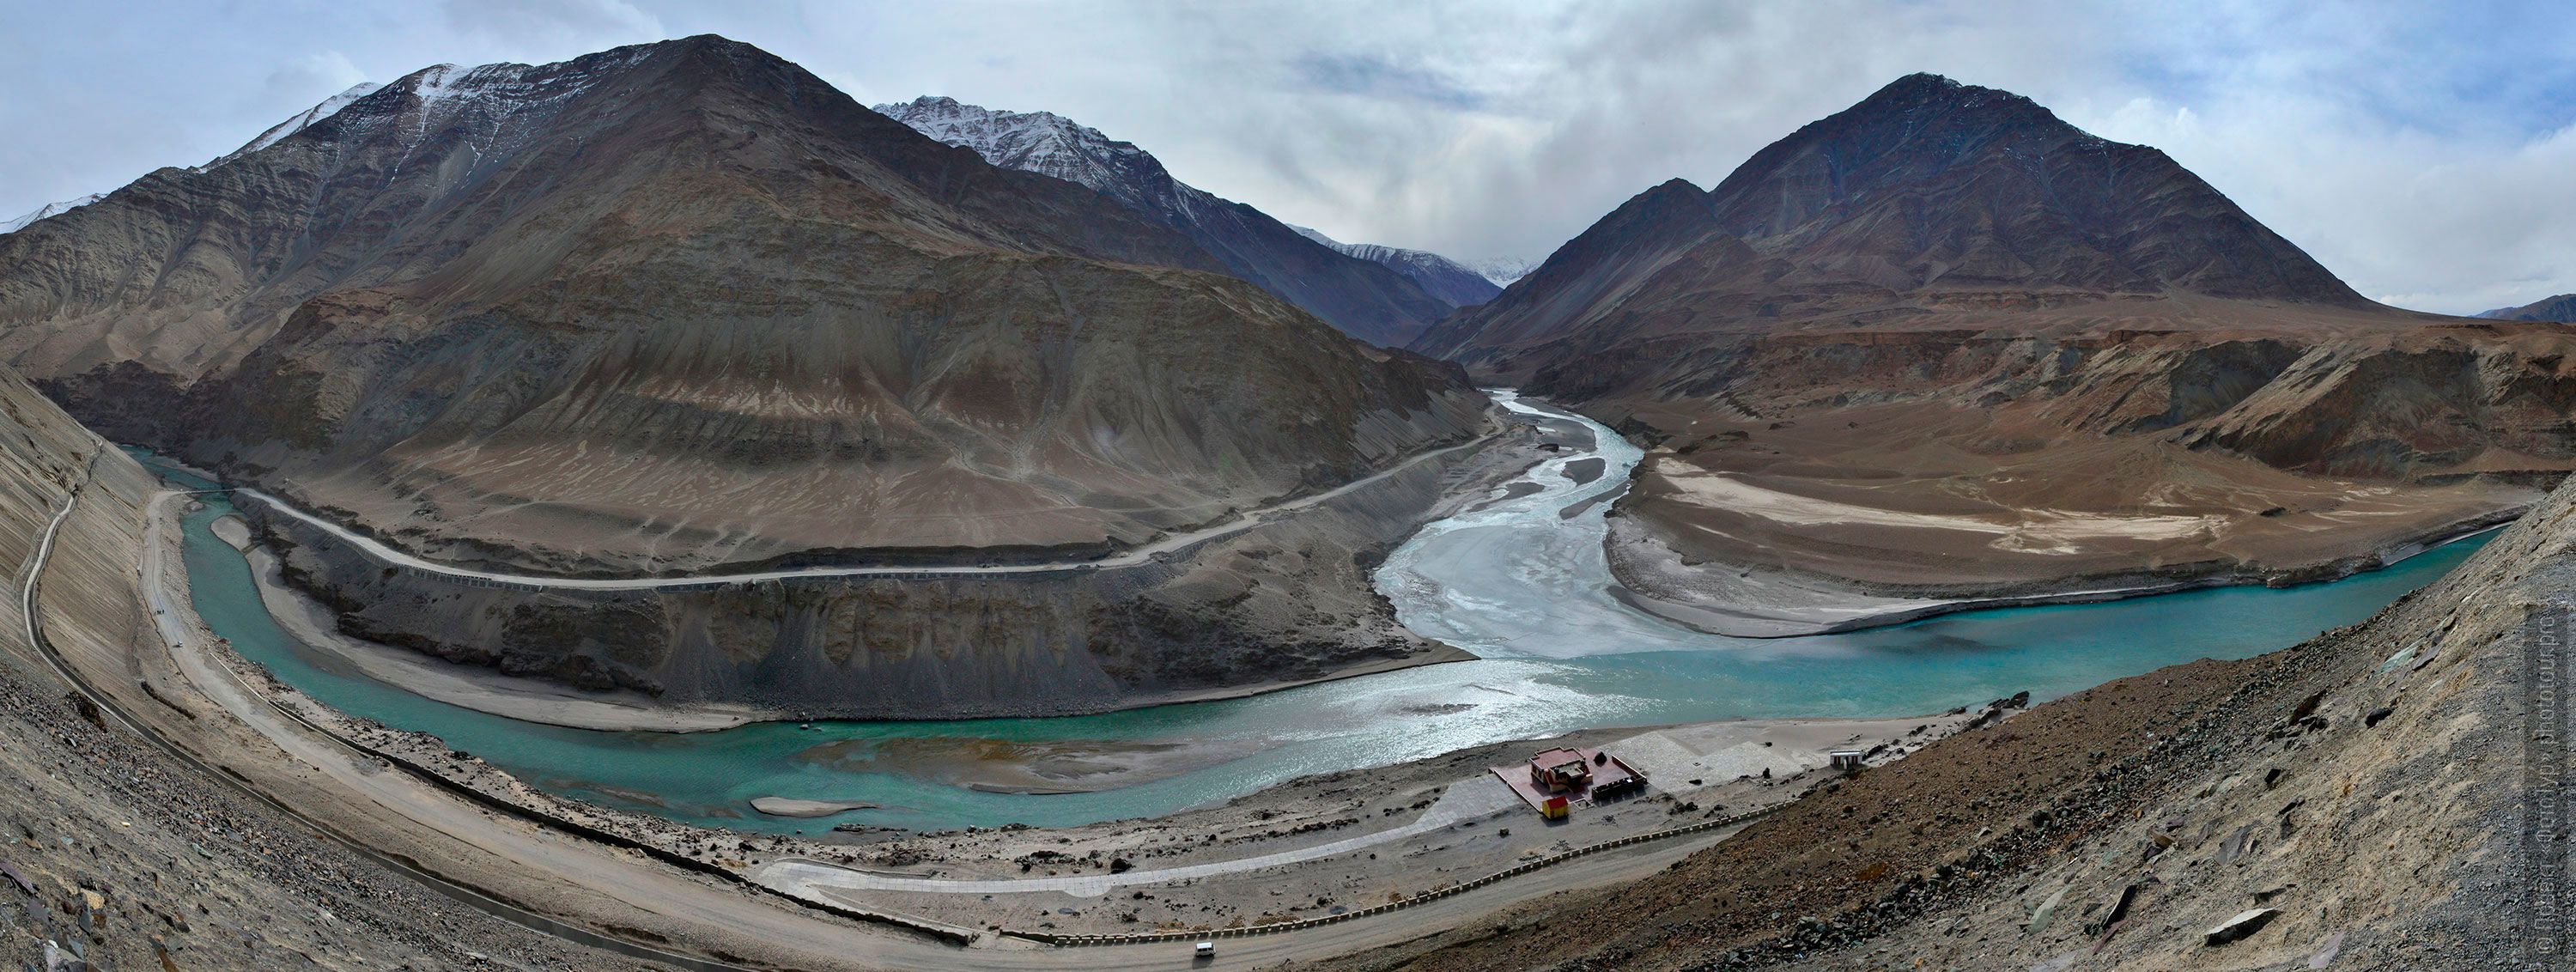 The confluence of the Indus and Zanskar rivers. Photo tour to Tibet for the Winter Mysteries in Ladakh, Stok and Matho monasteries, 01.03. - 03/10/2020